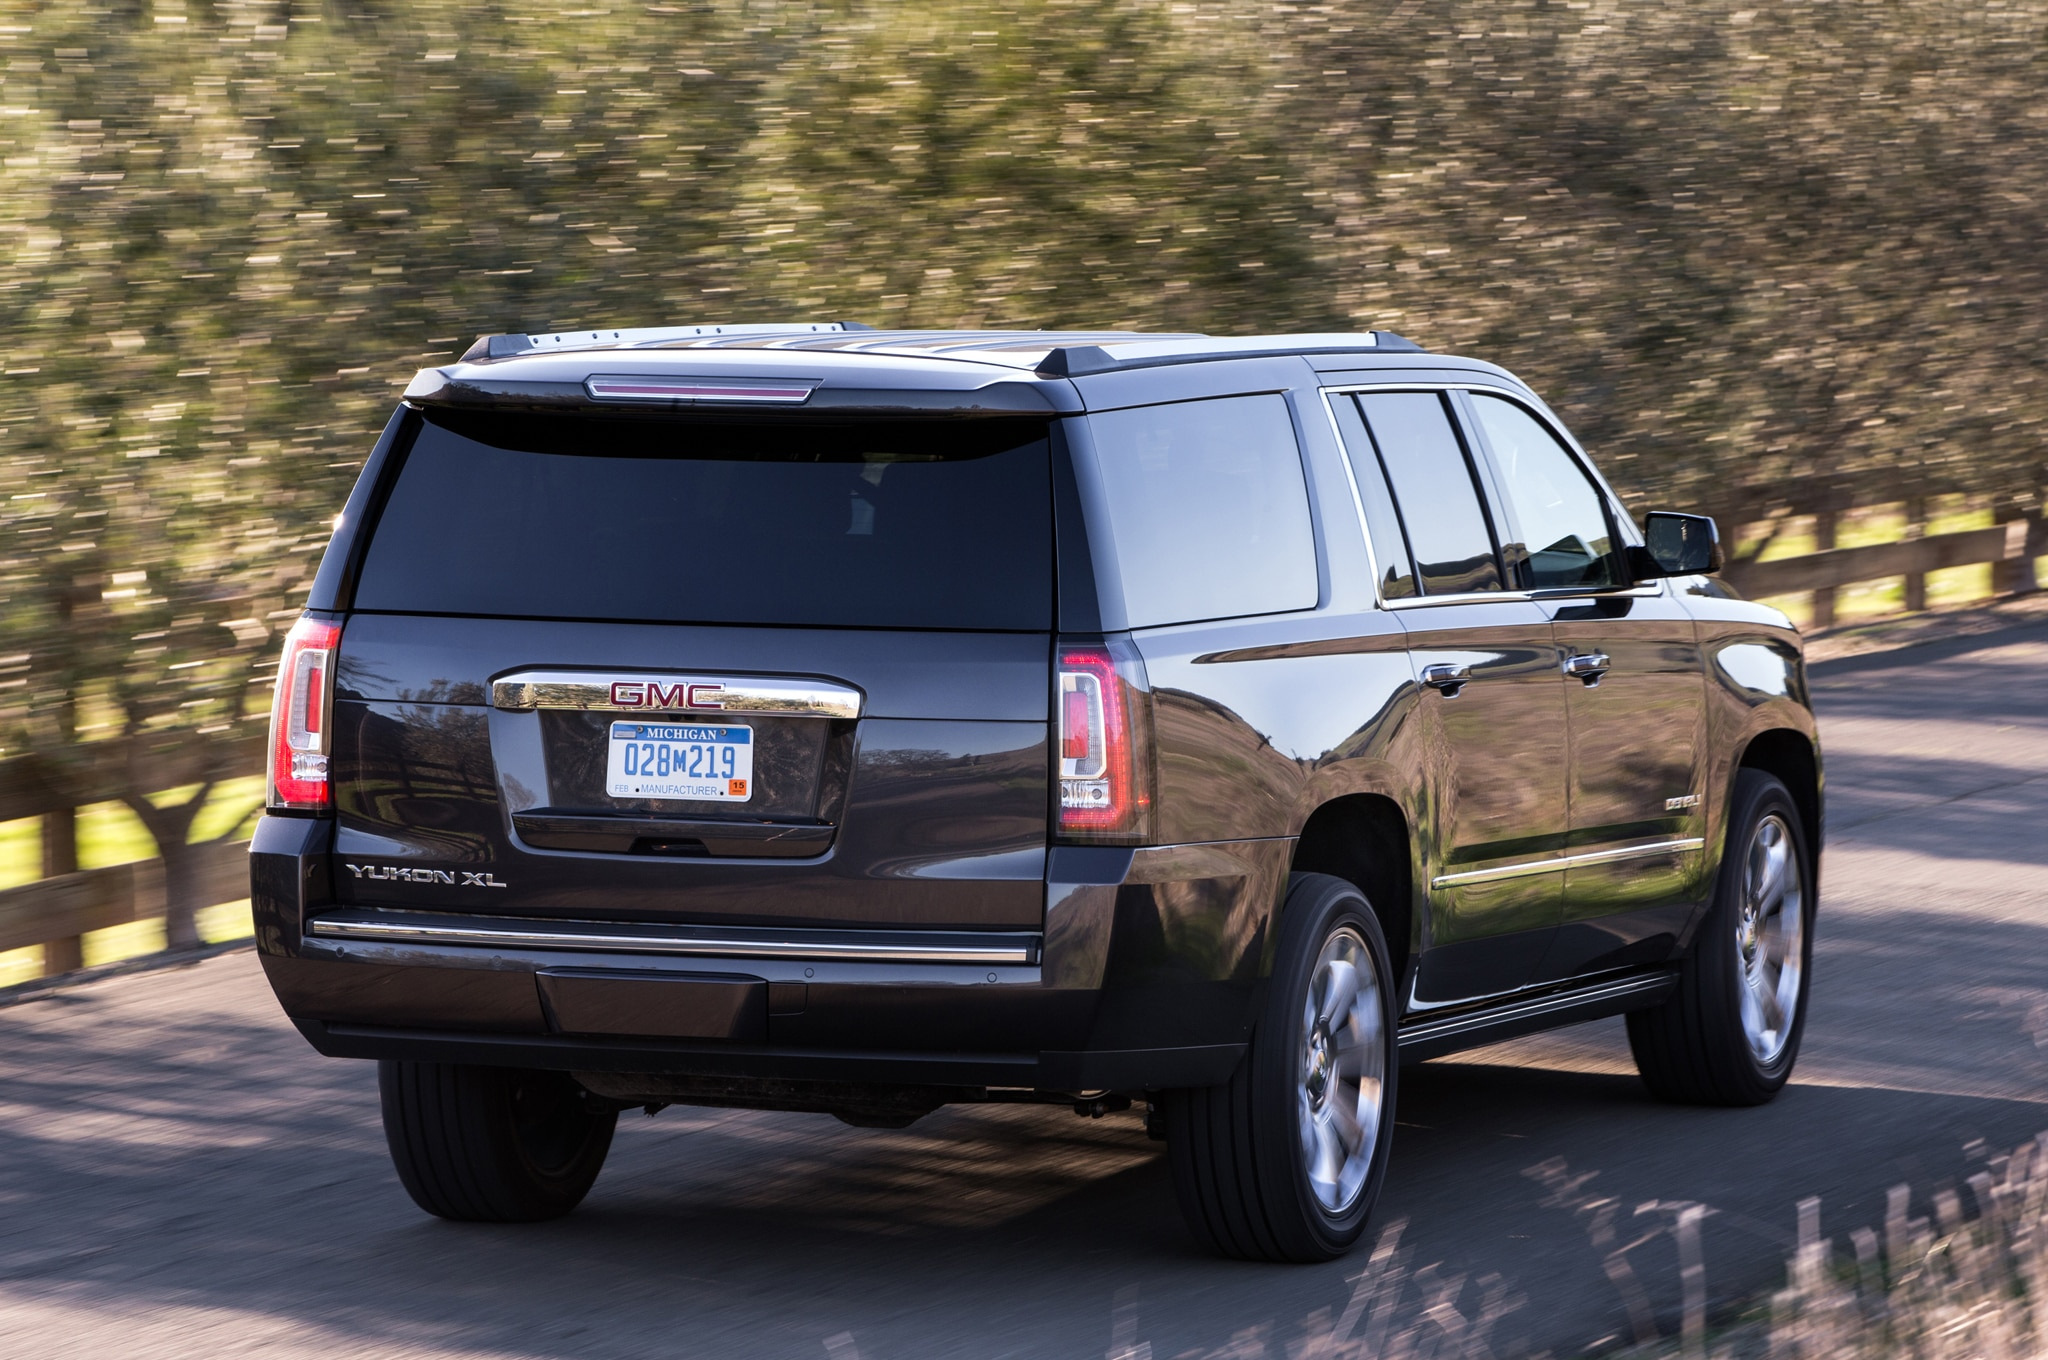 gmc cars truth yukon the of capsule review front denali about